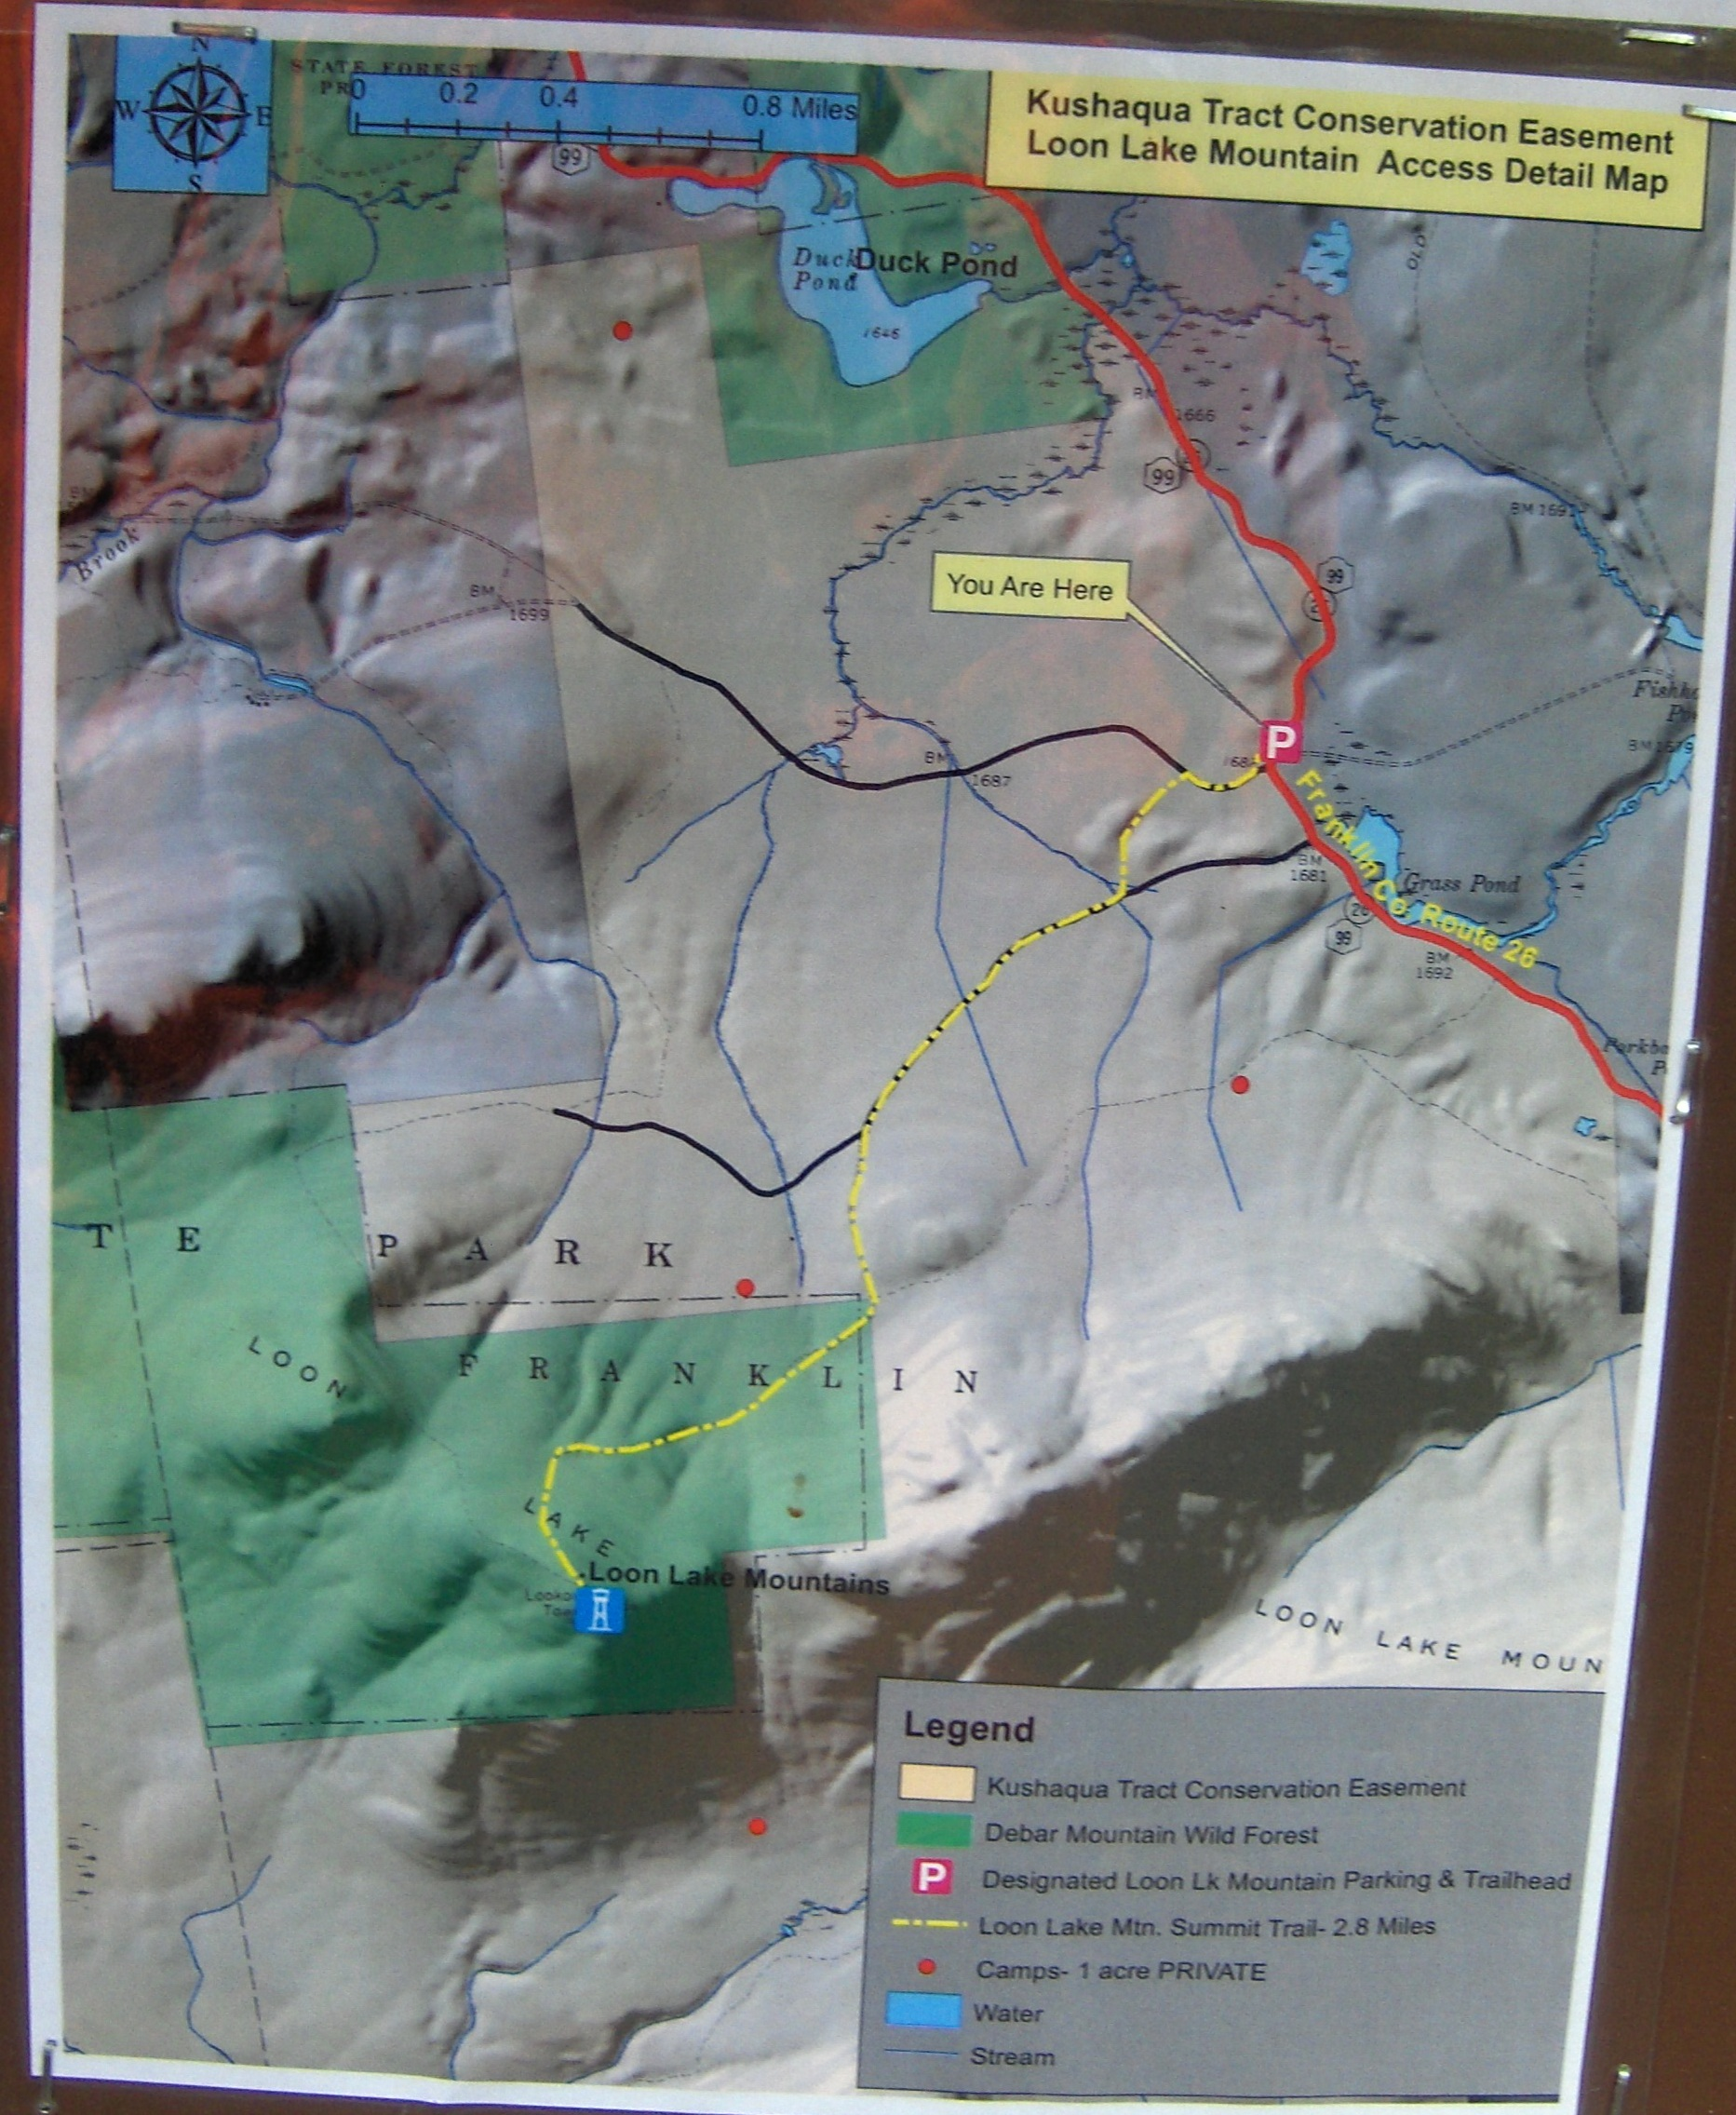 Loon lake mountain dec map that is at the kiosk publicscrutiny Choice Image